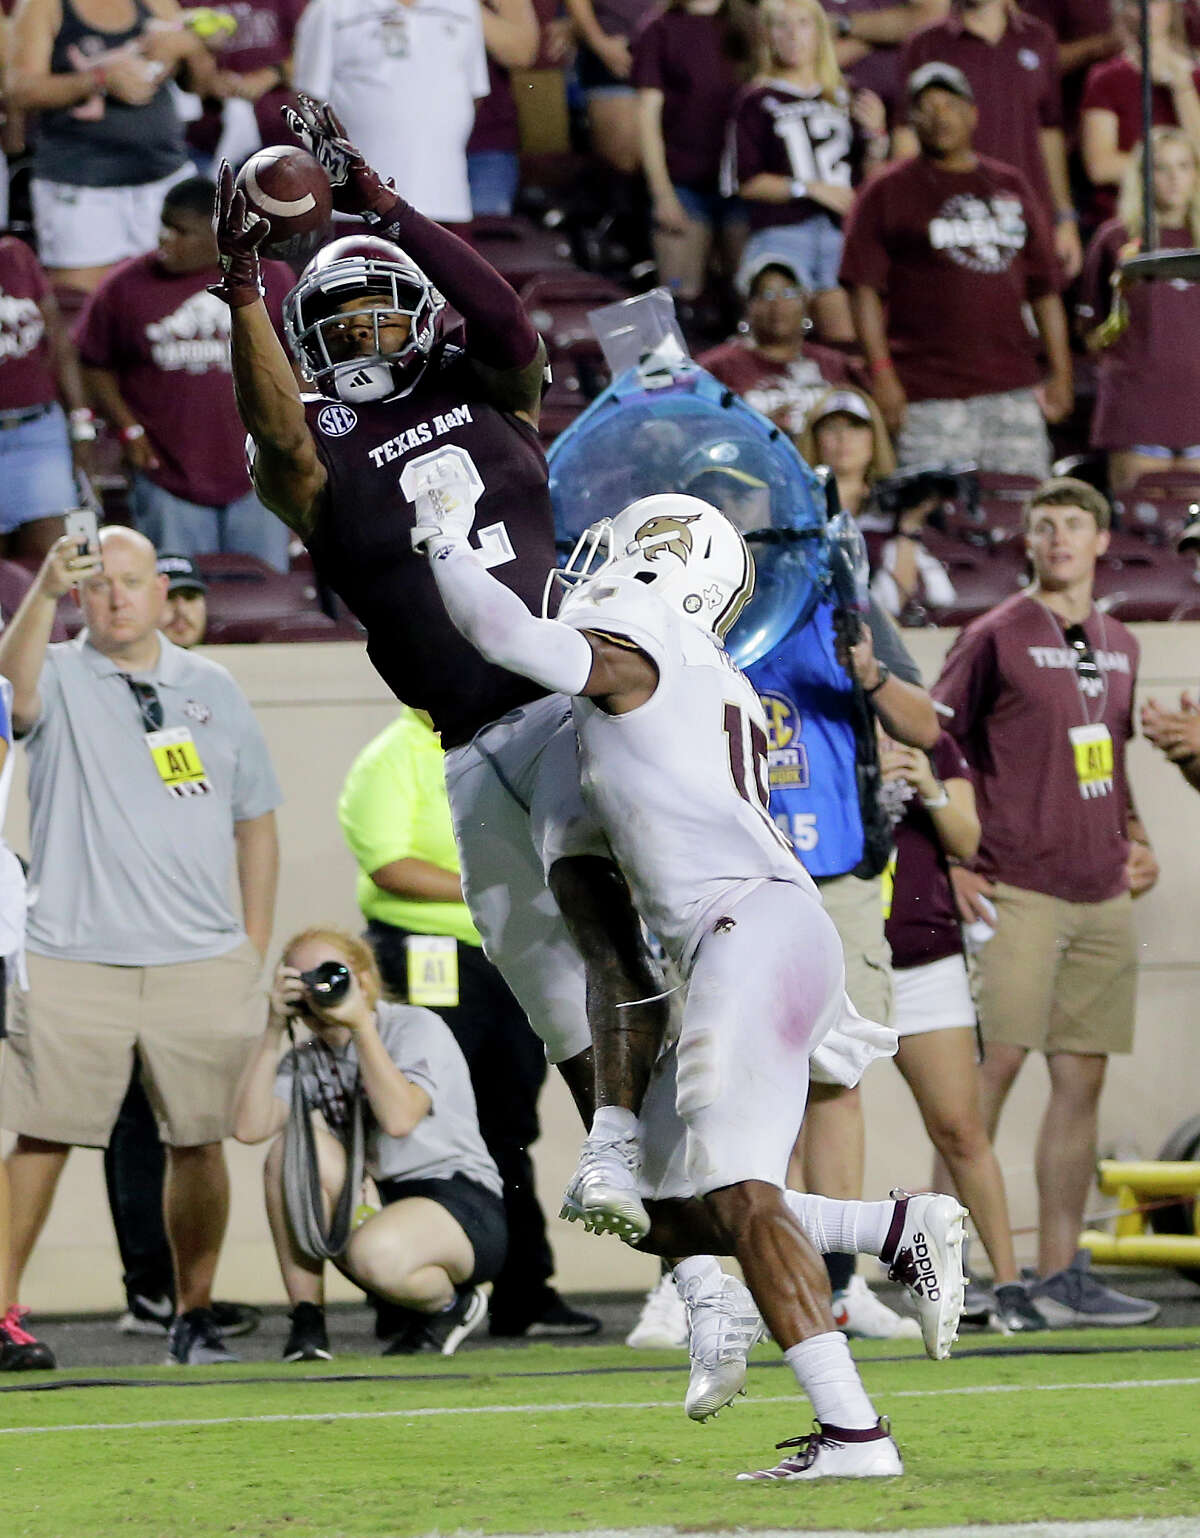 Texas A&M wide receiver Jhamon Ausbon (2) catches a pass for a touchdown against Texas State defensive back Jarron Morris (15) during the second half of an NCAA college football game Thursday, Aug. 29, 2019, in College Station, Texas. (AP Photo/Sam Craft)